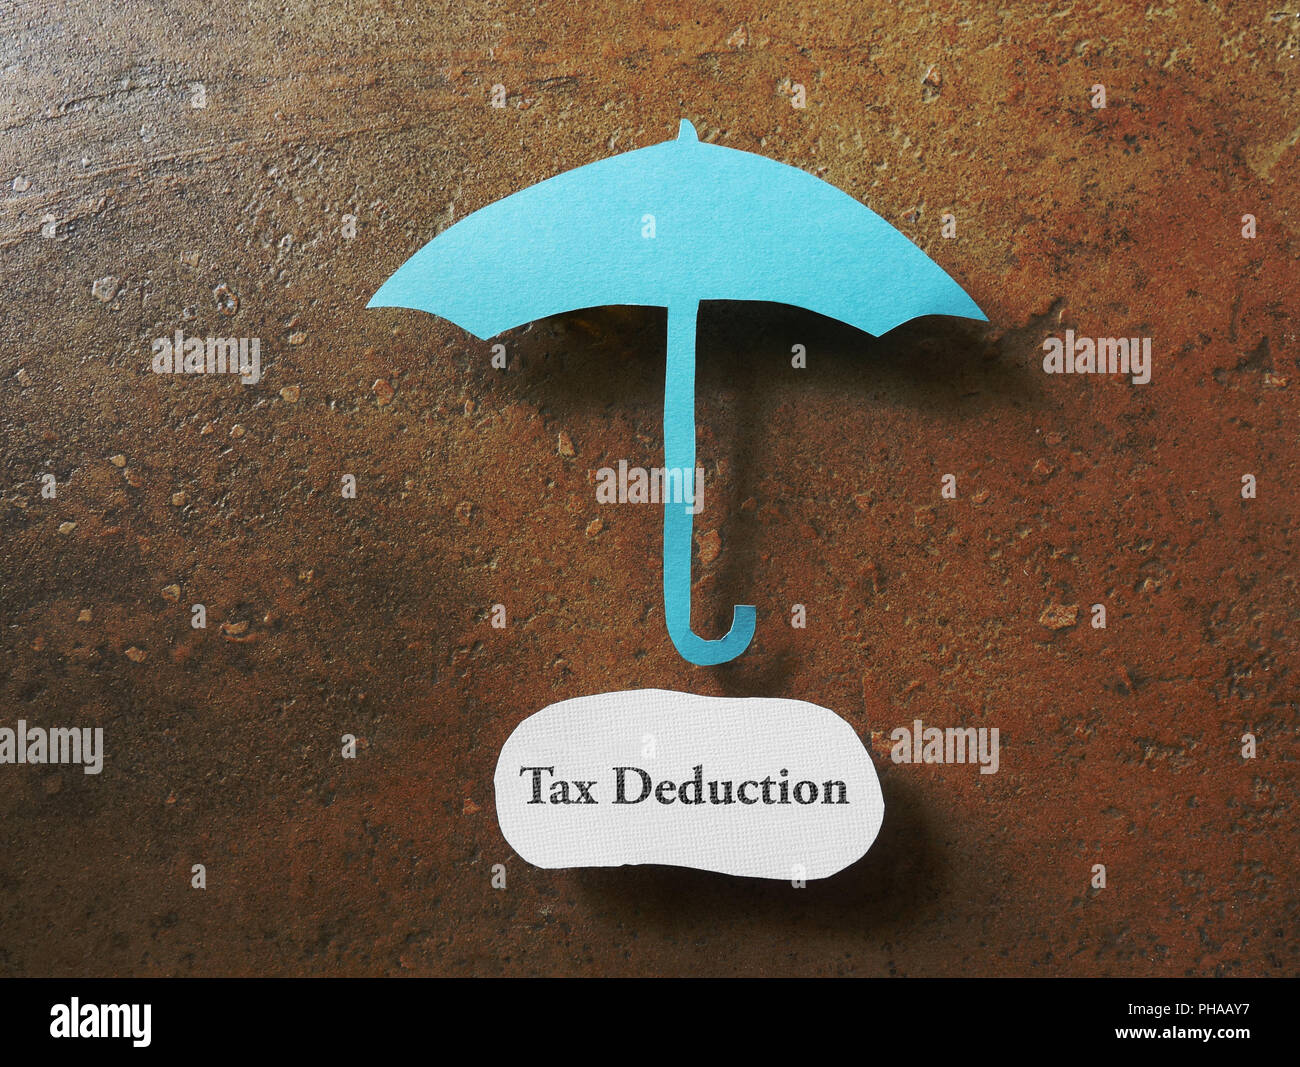 Tax deduction concept - Stock Image